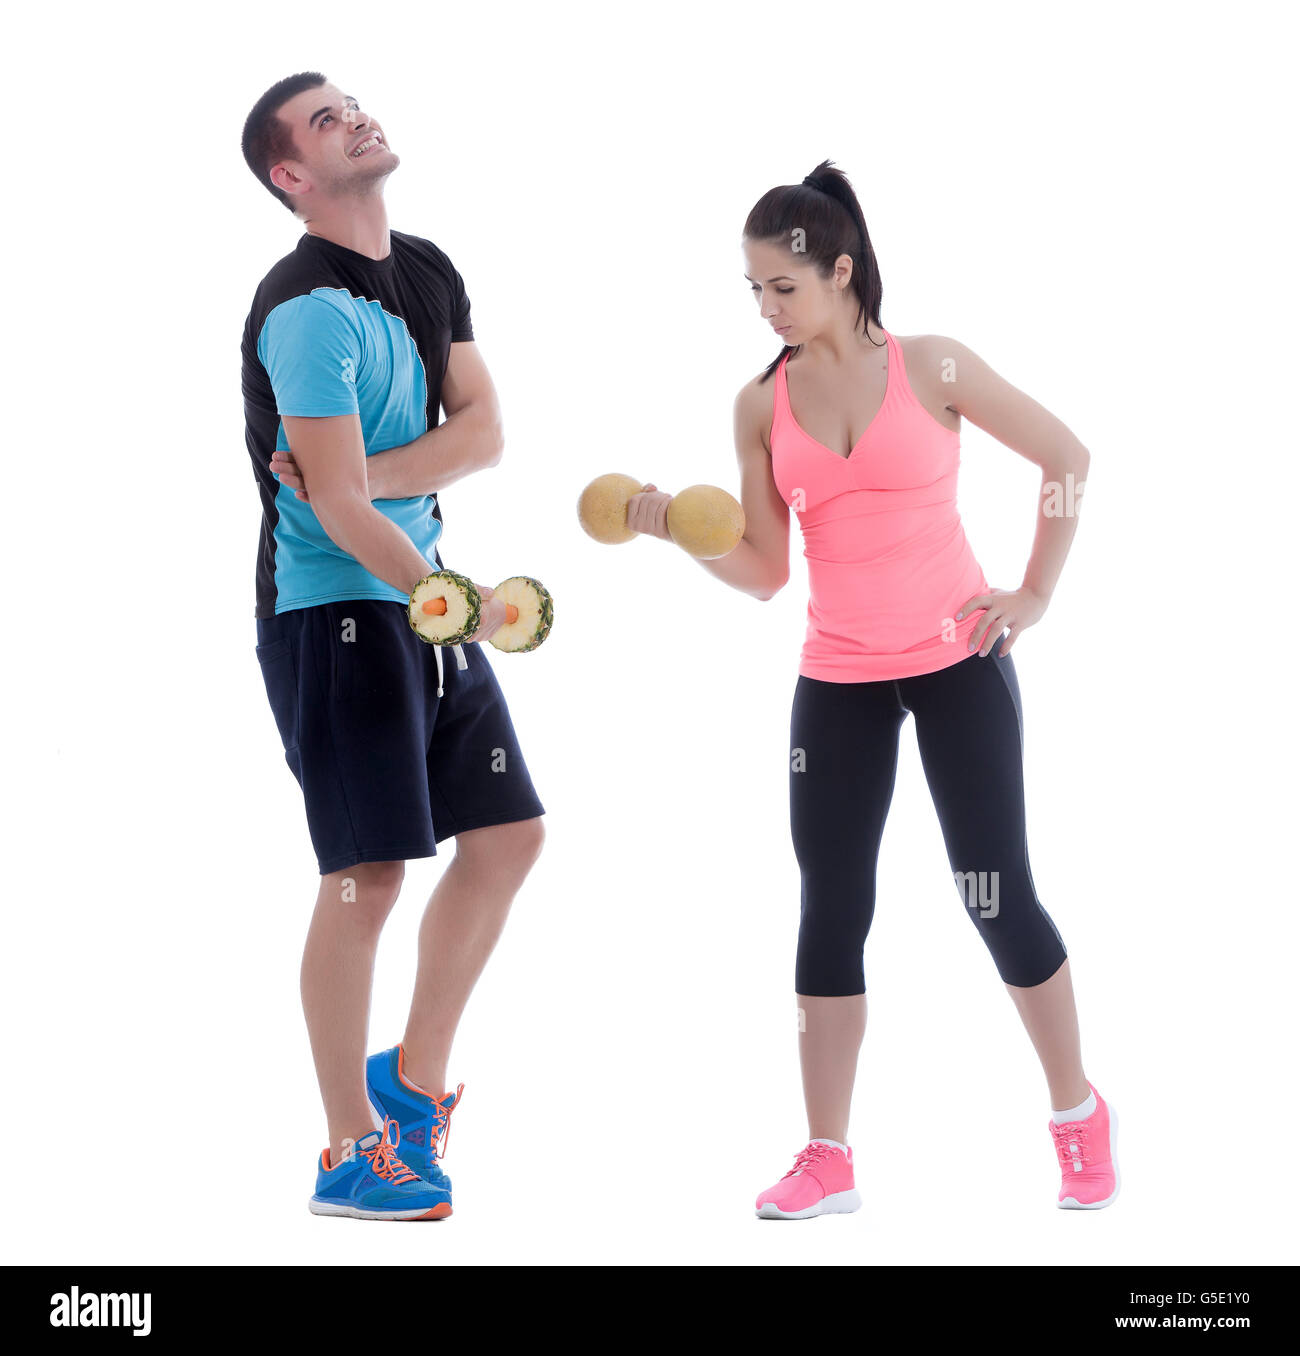 Fit couple working out with dumbbells created with fuits and vegetables - Stock Image